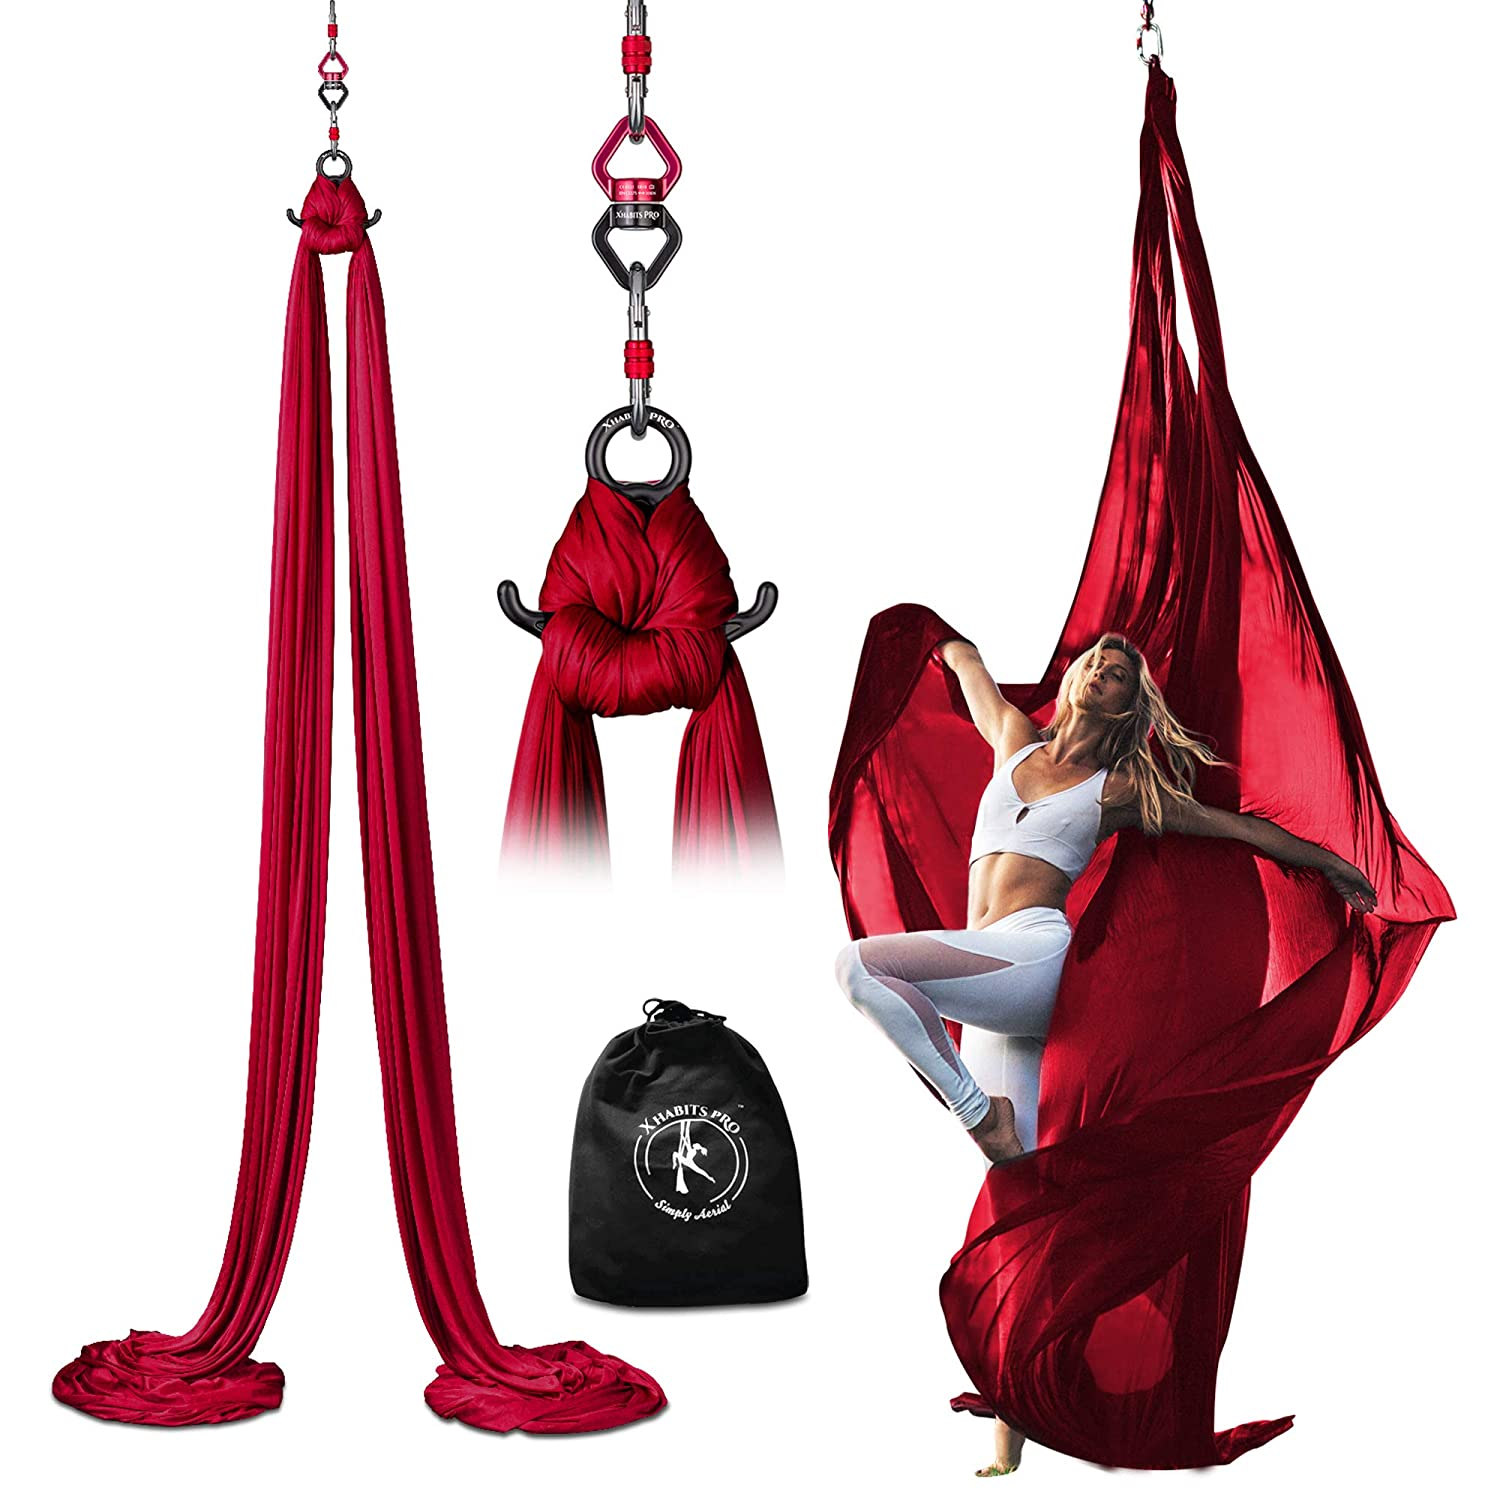 X Habits Pro Professional 10 Yards Aerial Silks Equipment for All Levels - Medium Stretch Aerial Yoga Swing & Hammock Kit - Perfect for Indoor Outdoor ...